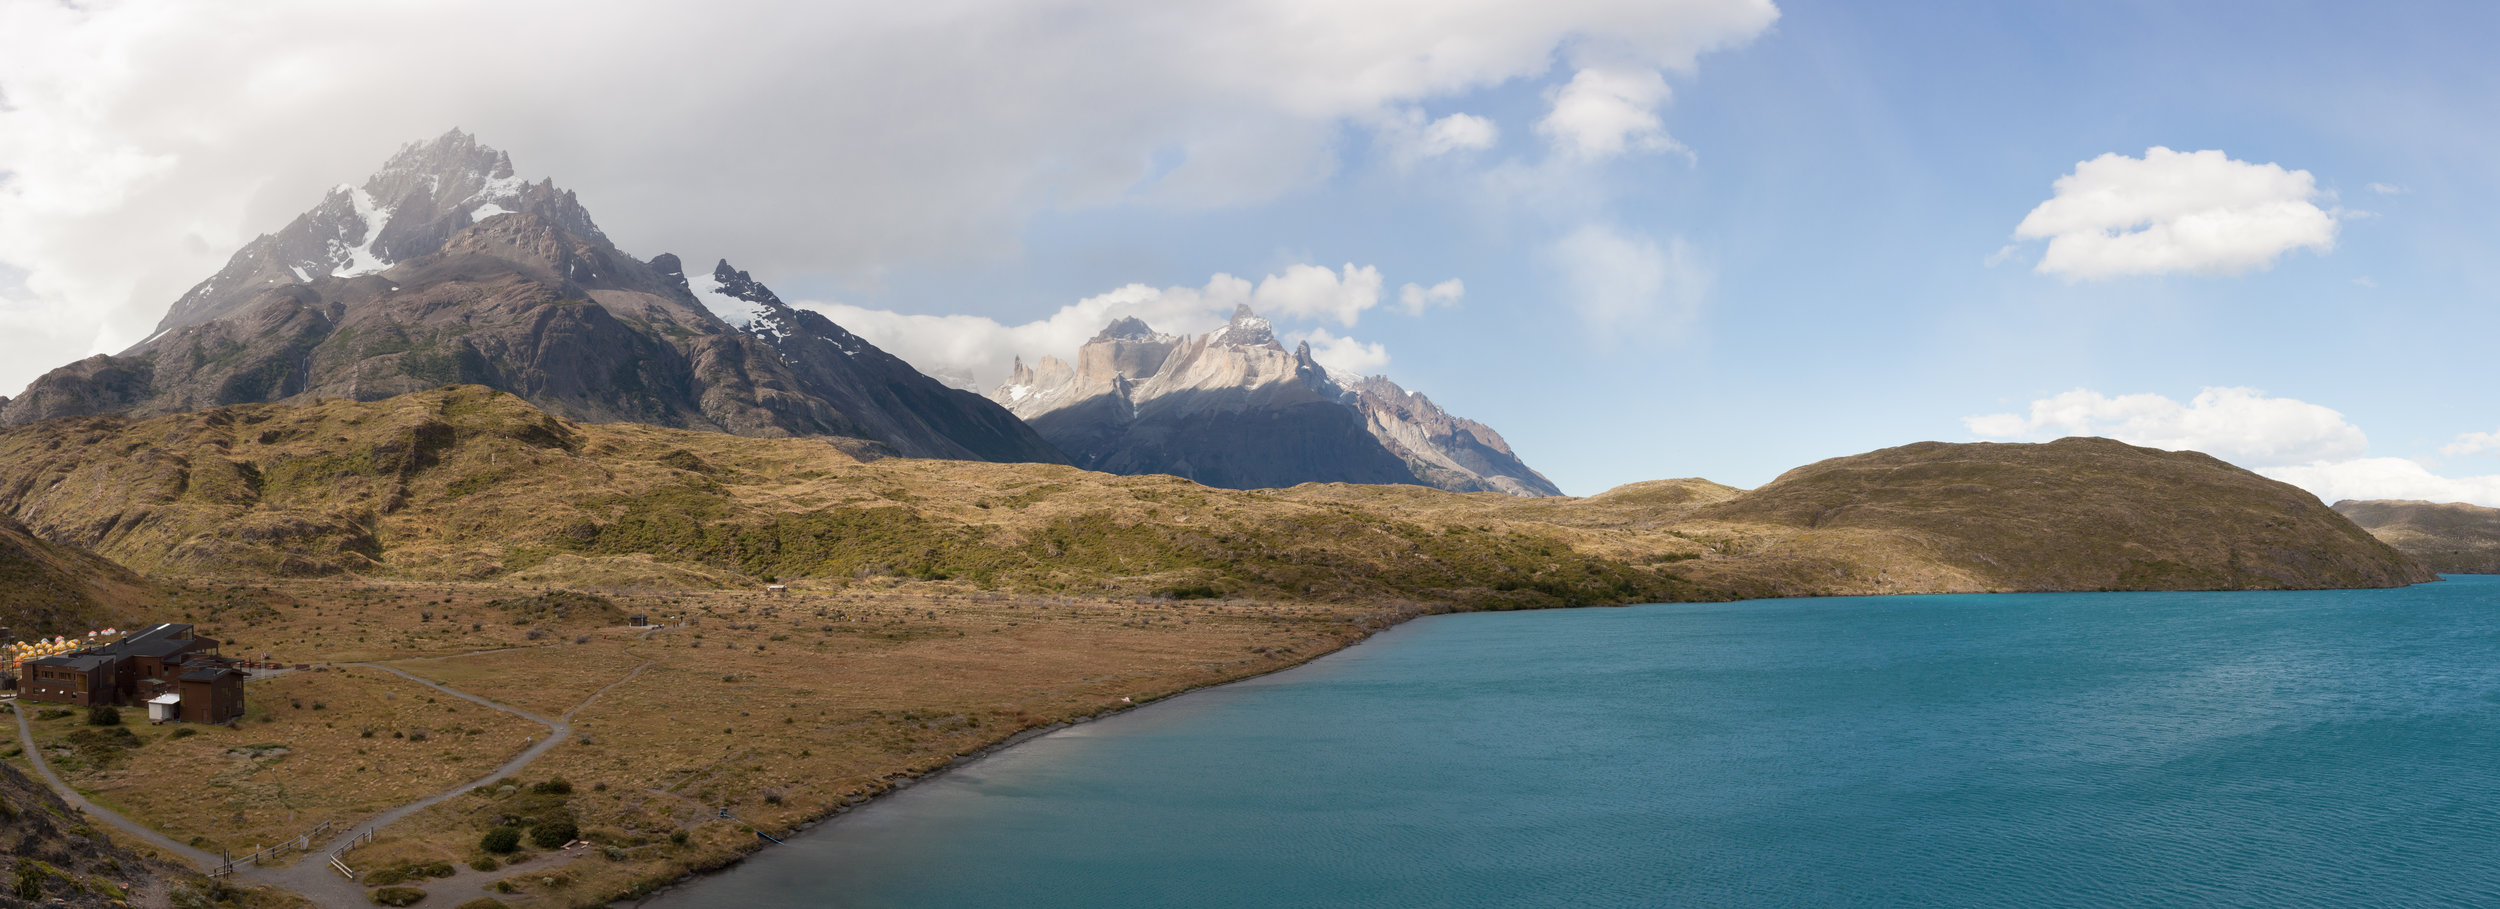 Peho  é Lake sits below the Paine Grande   Peak with Cuernos del Paine in the background.